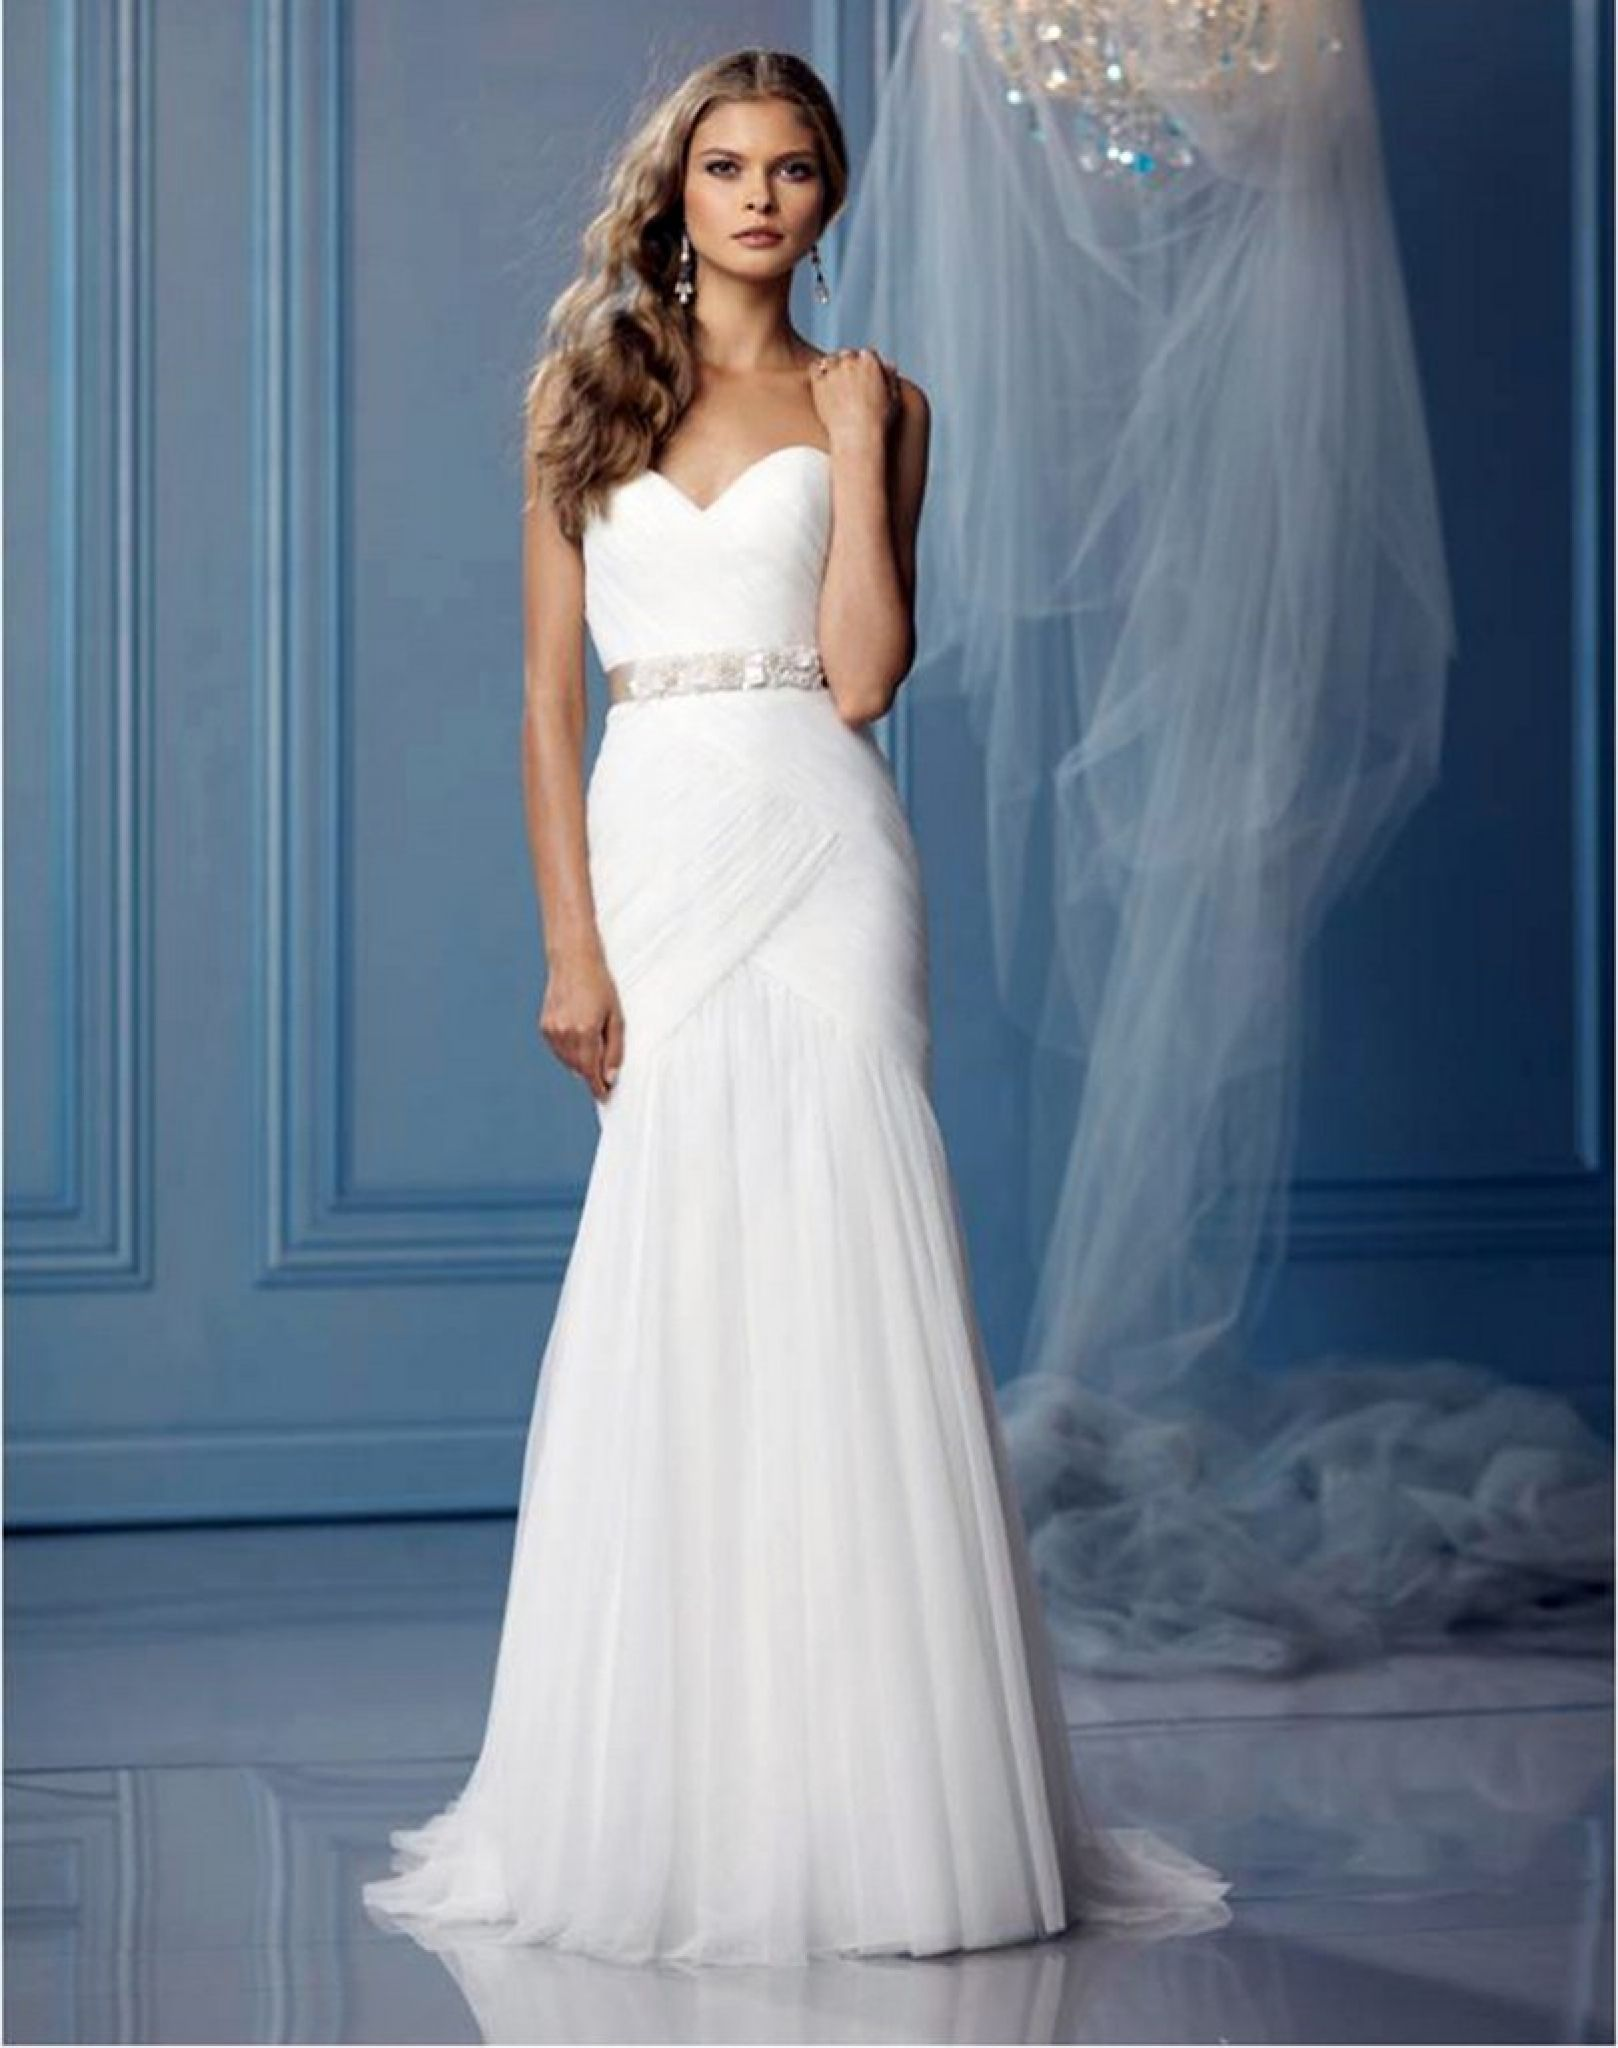 Awesome Fall Guest Wedding Dresses Crest - All Wedding Dresses ...